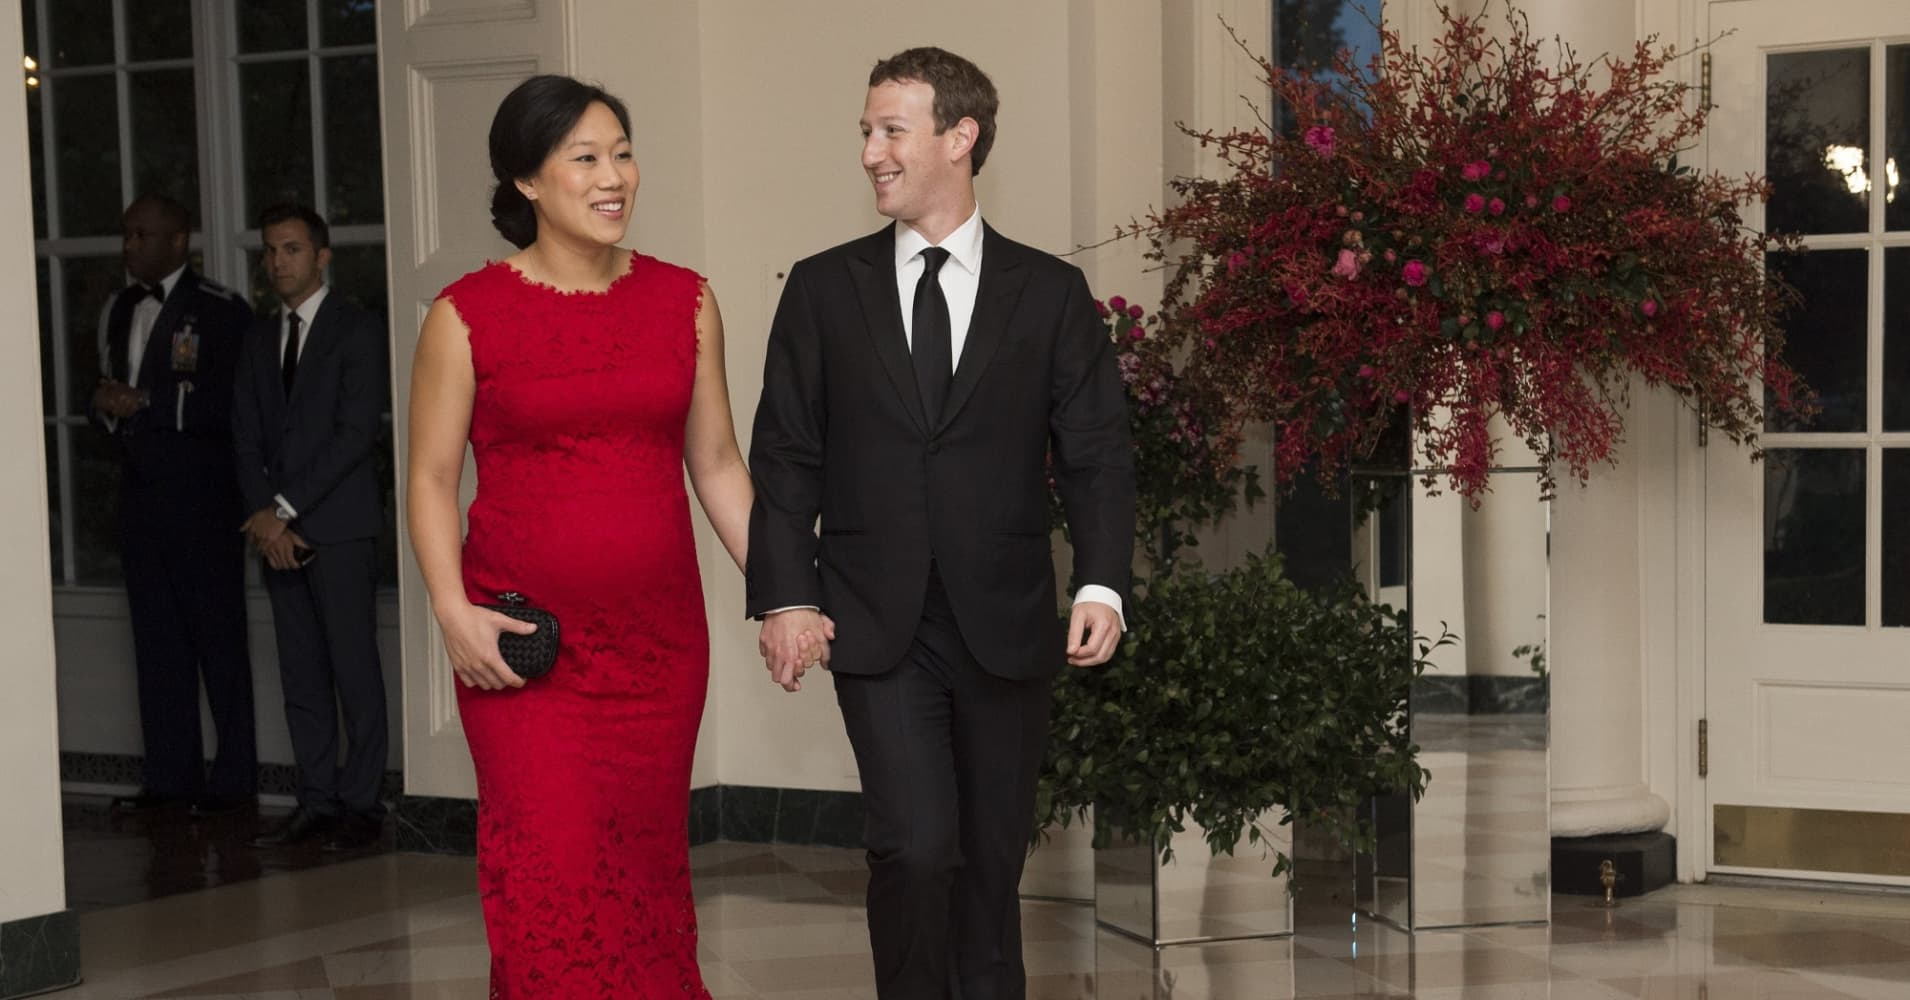 Priscilla Chan and Mark Zuckerberg at the White House on September 25, 2015.